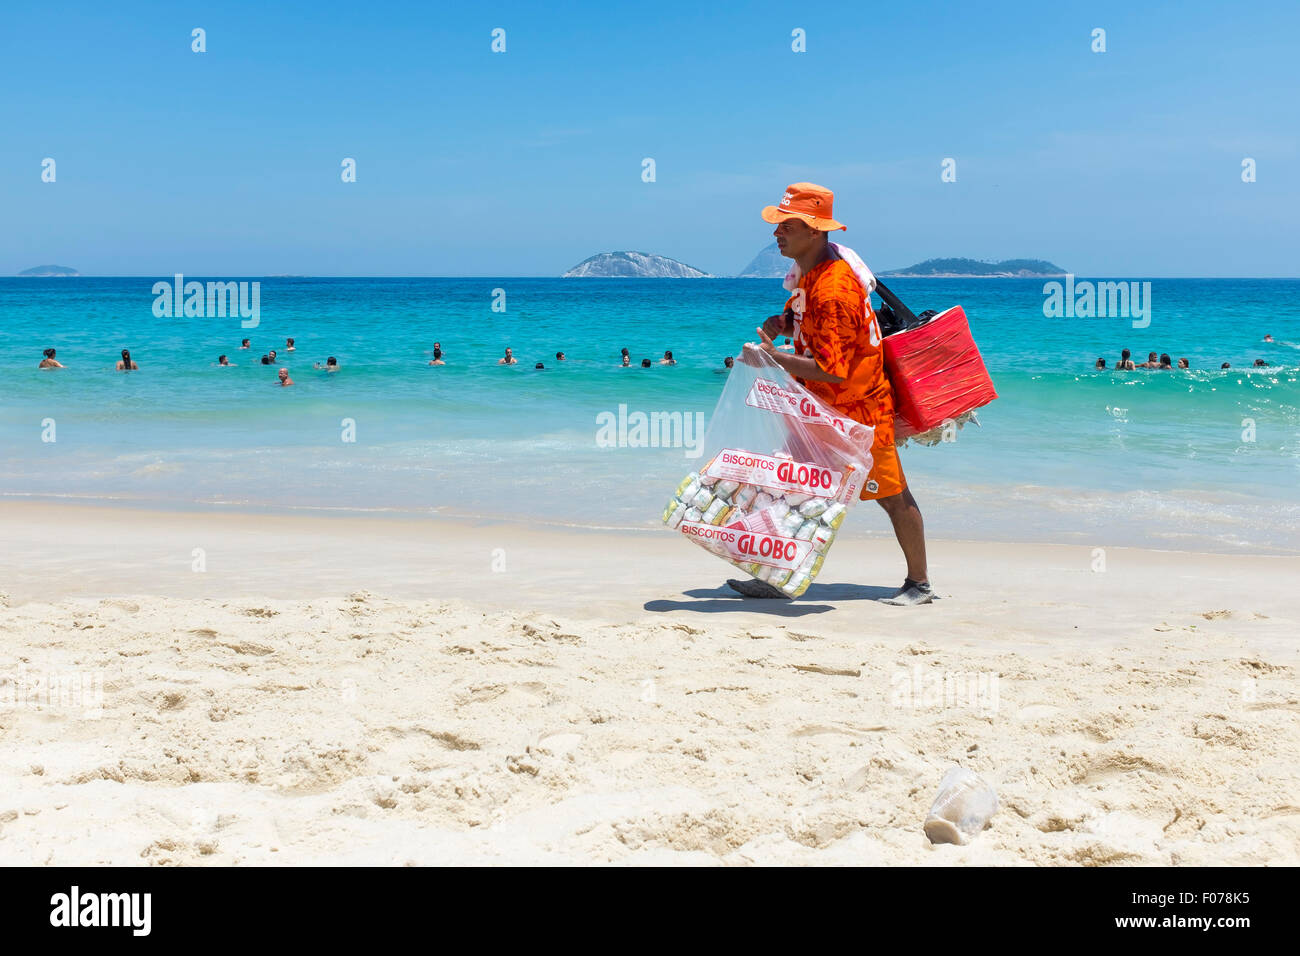 RIO DE JANEIRO, BRAZIL - MARCH 15, 2015: Brazilian vendor walks selling South American mate tea and Globo brand - Stock Image